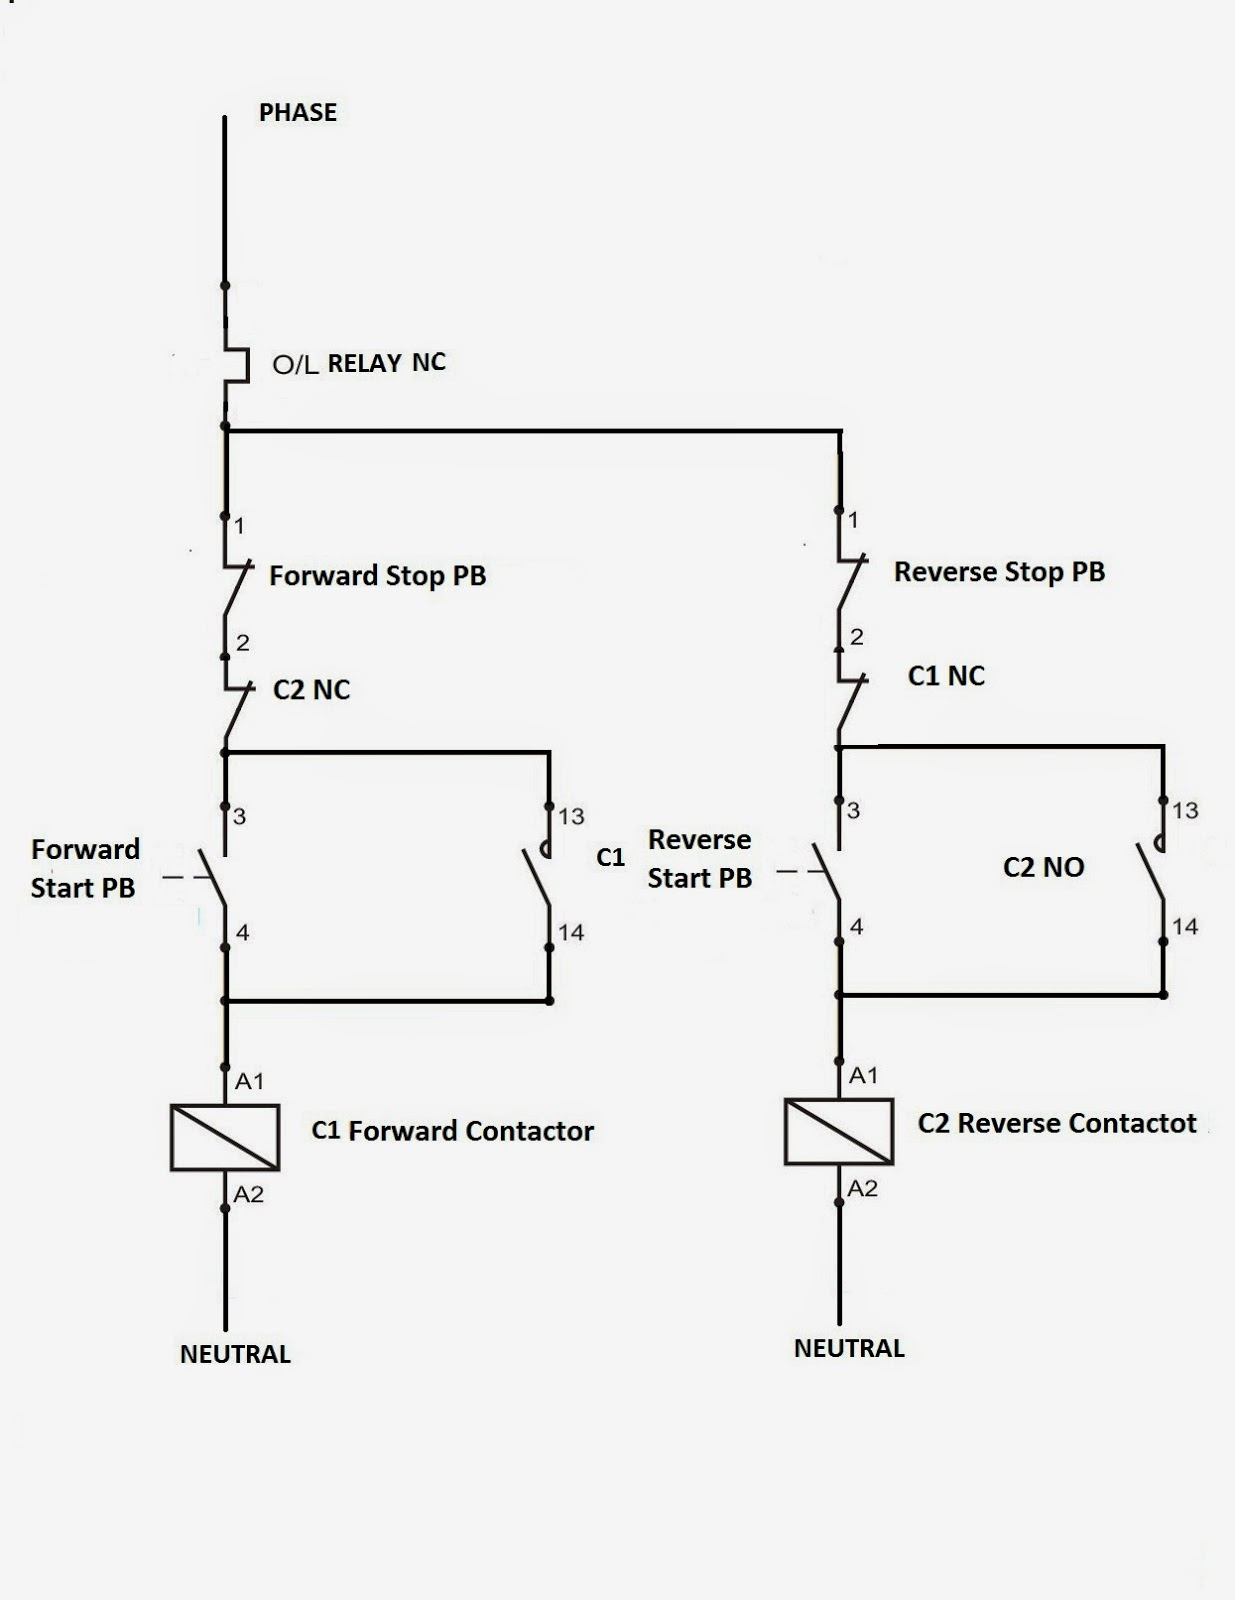 Reversing Switch Wiring Diagram With Limits Great Installation Of Relay On Spdt Forward Reverse Dc Motor Electrical Standards Direct Online Applications Rh Electrialstandards Blogspot Com Furnas Drum